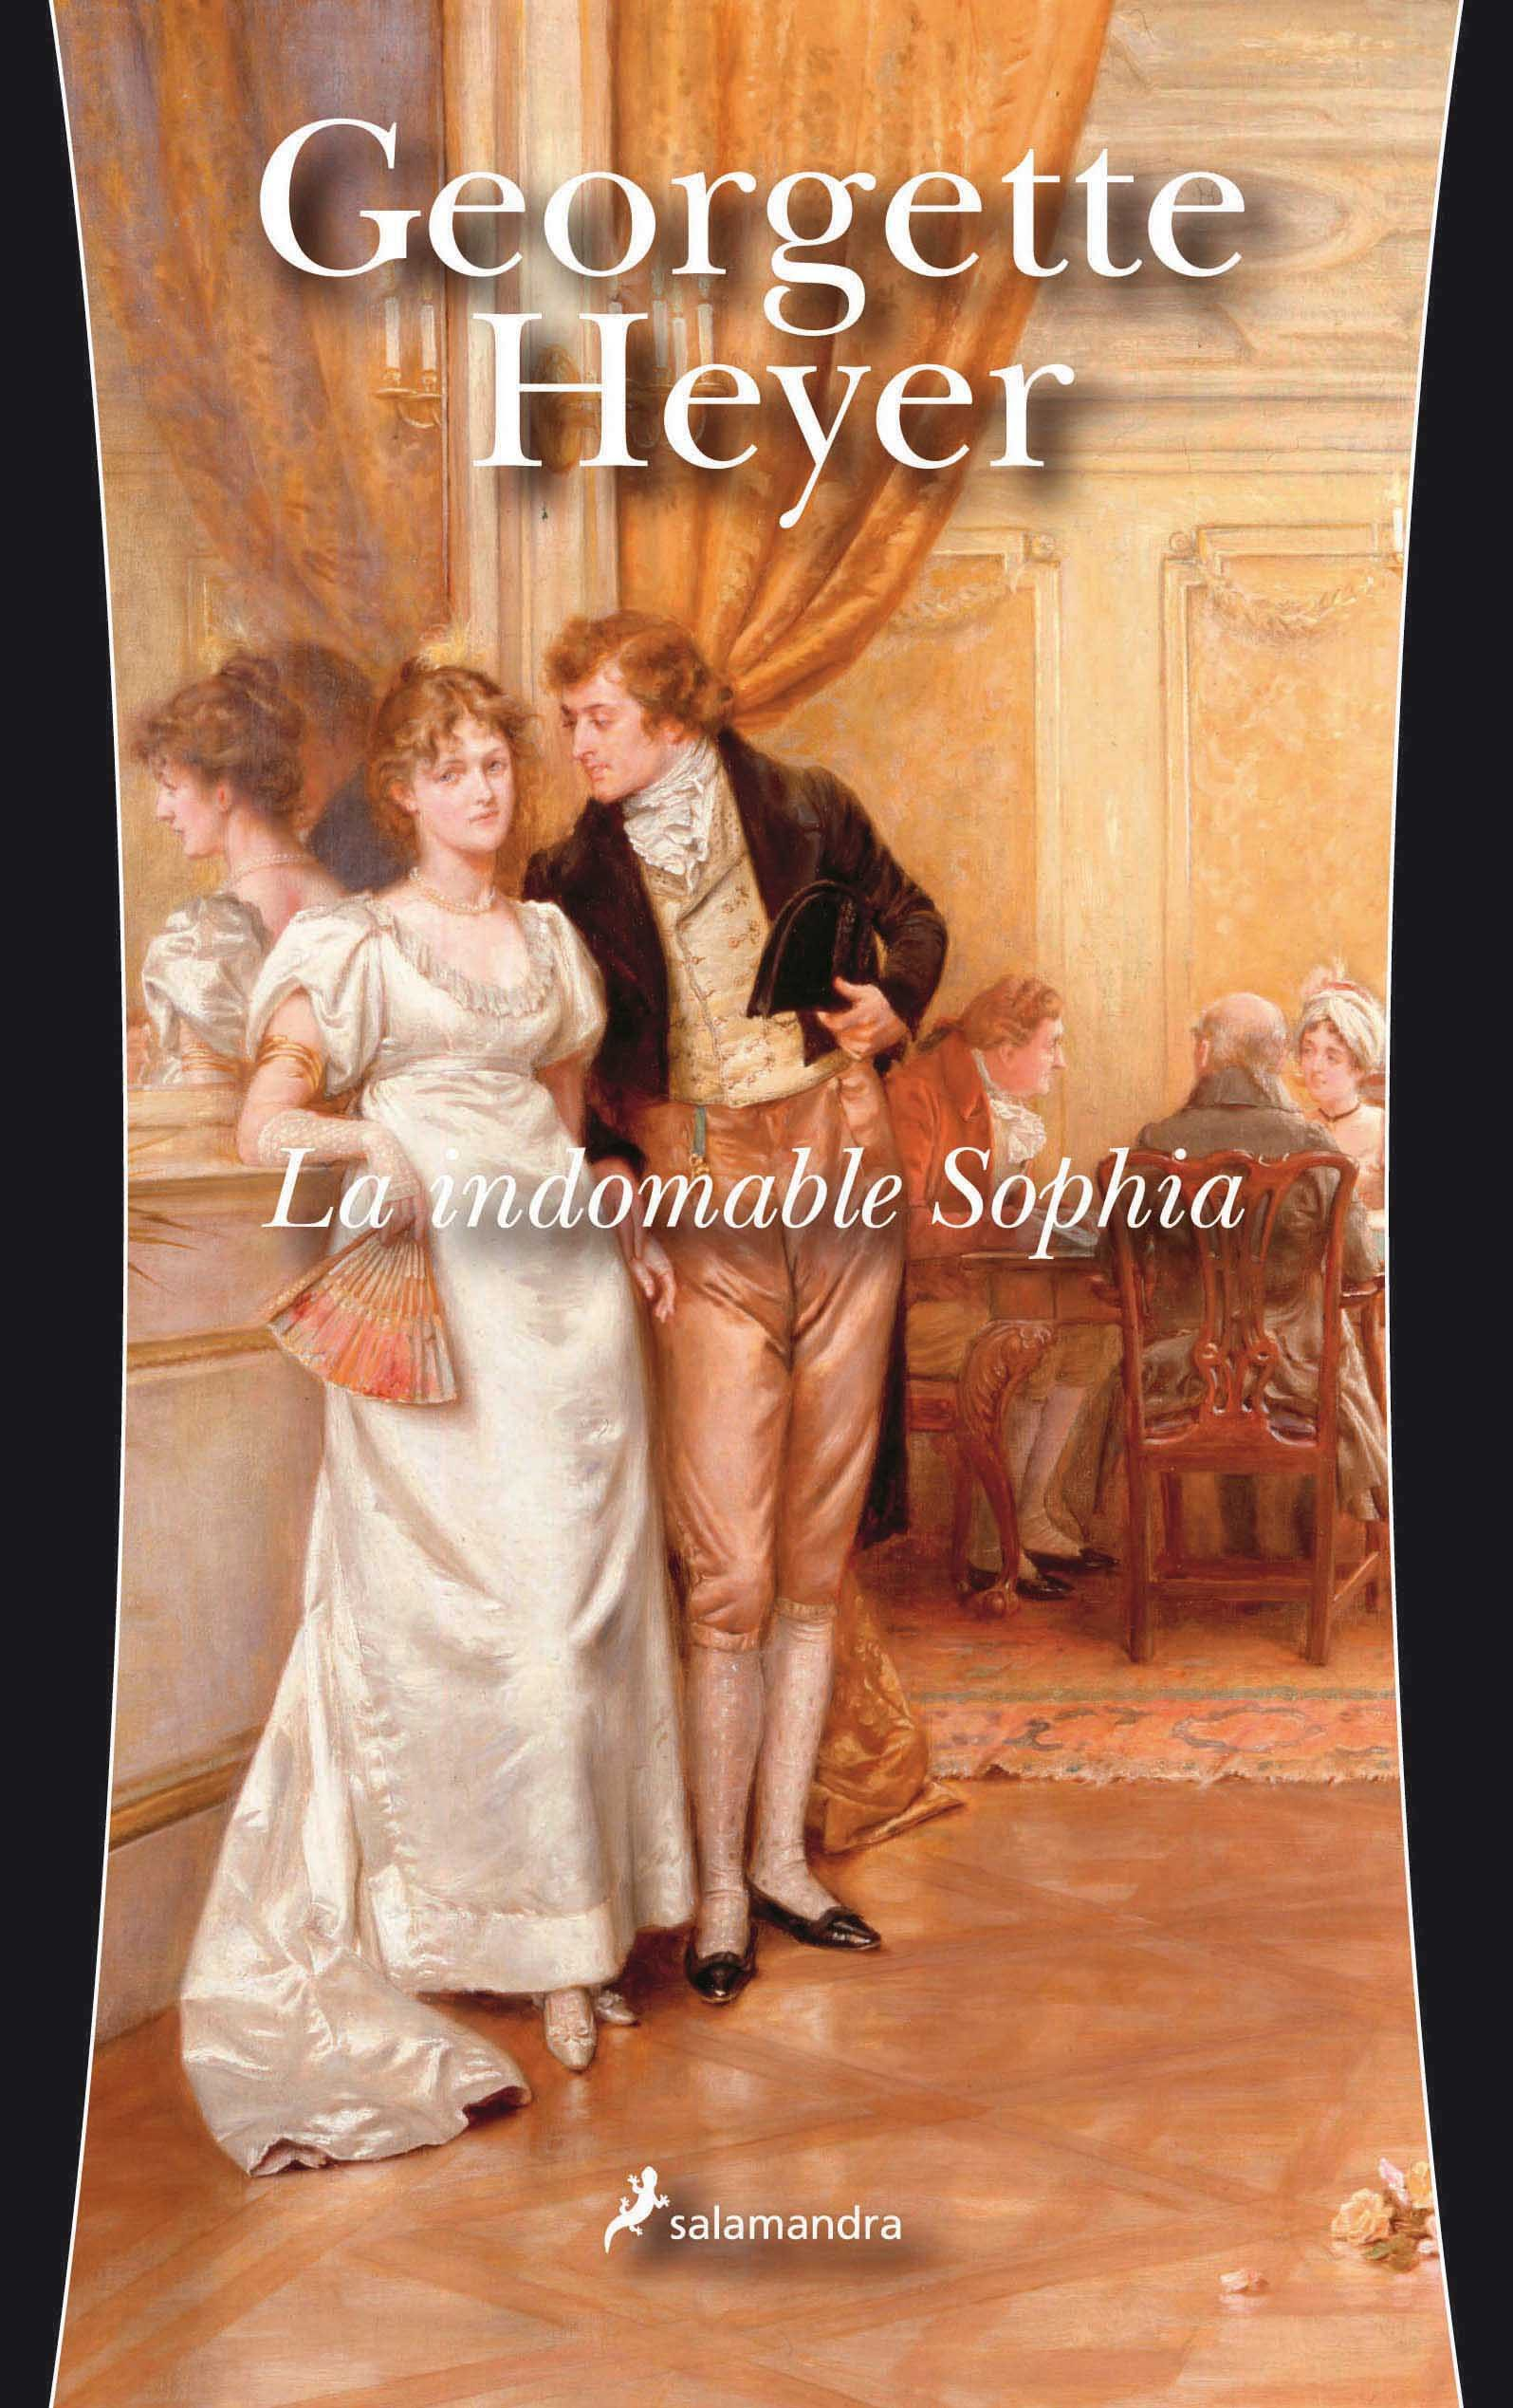 Indomable Libro La Indomable Sophia Georgette Heyer Comprar Libro 9788498380965